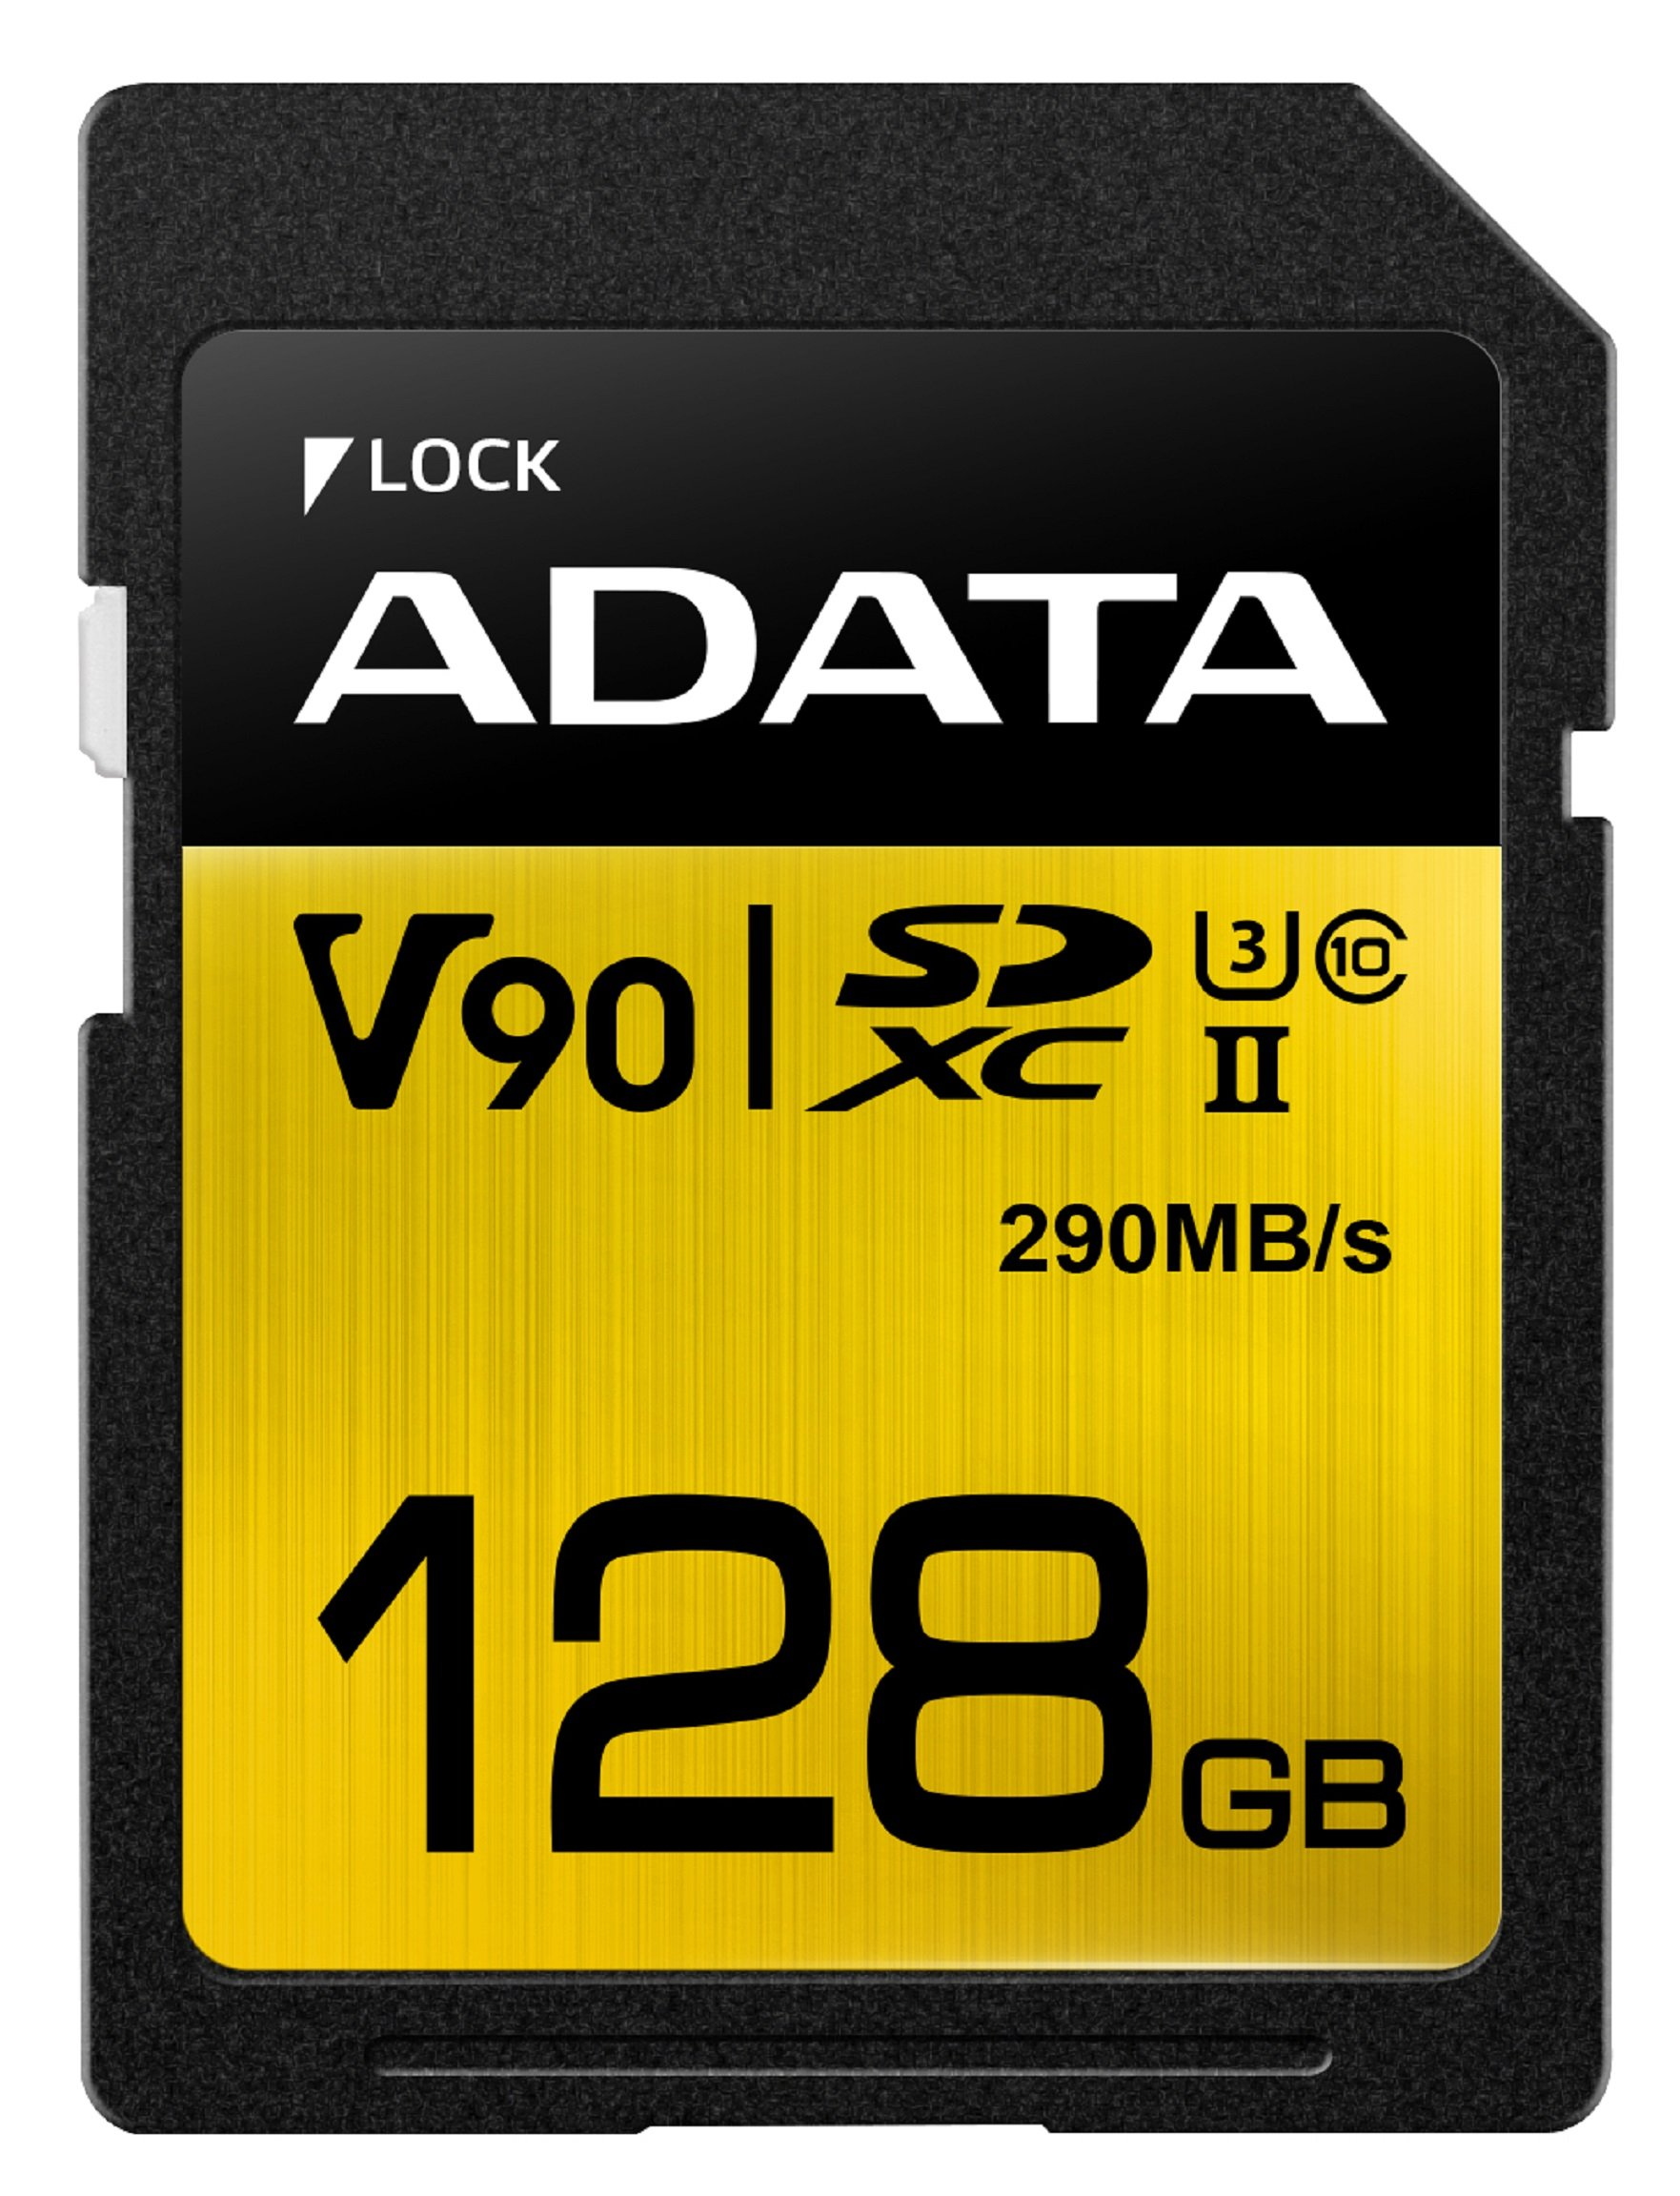 ADATA Premier ONE 128GB SDXC UHS-II U3 Class10 V90 3D NAND 4K 8K Ultra HD 290MB/s SD Card (ASDX128GUII3CL10-C) by ADATA